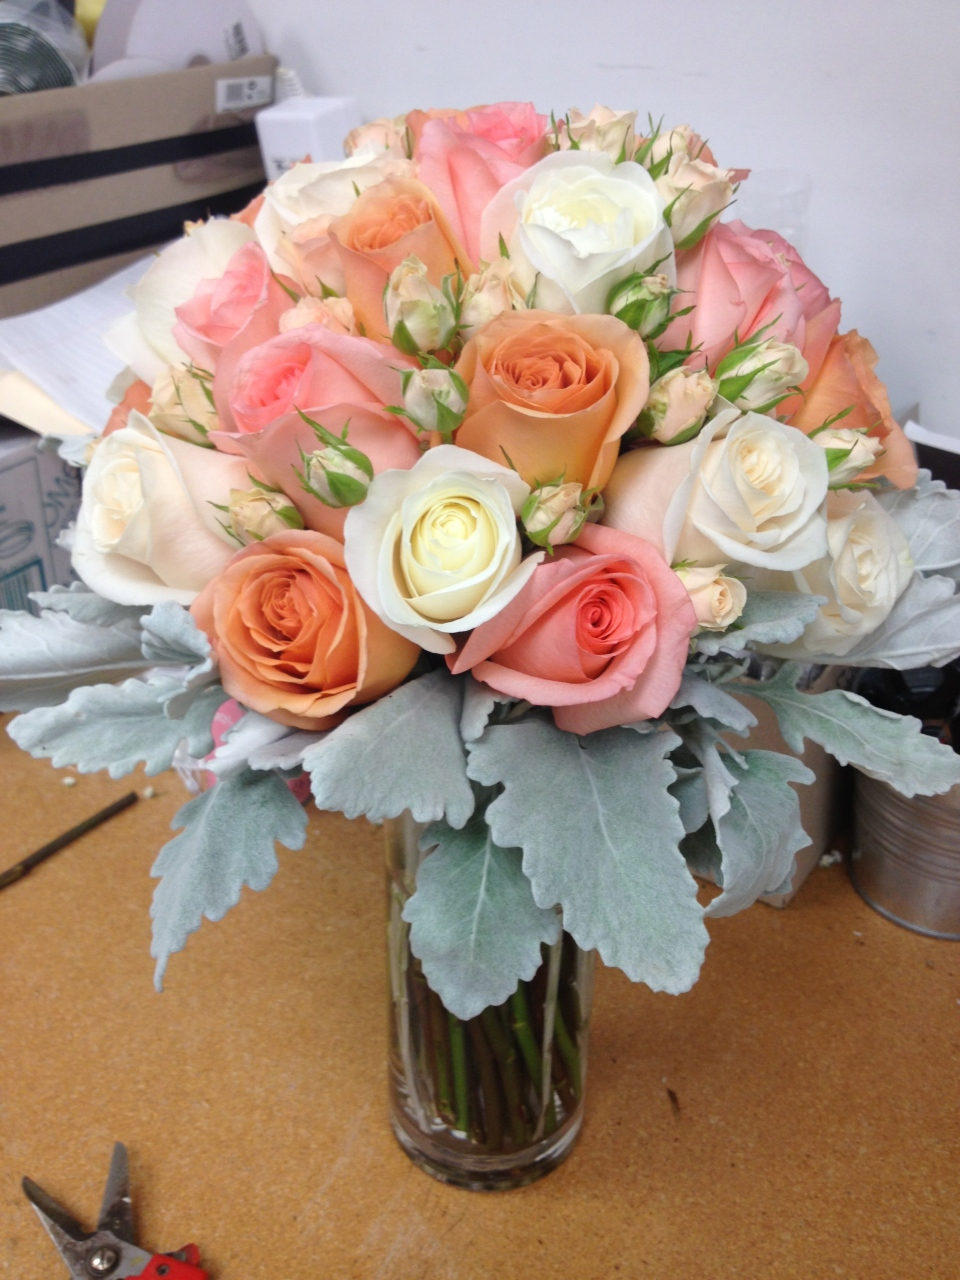 Peach, pink and white rose bouquet with dusty miller